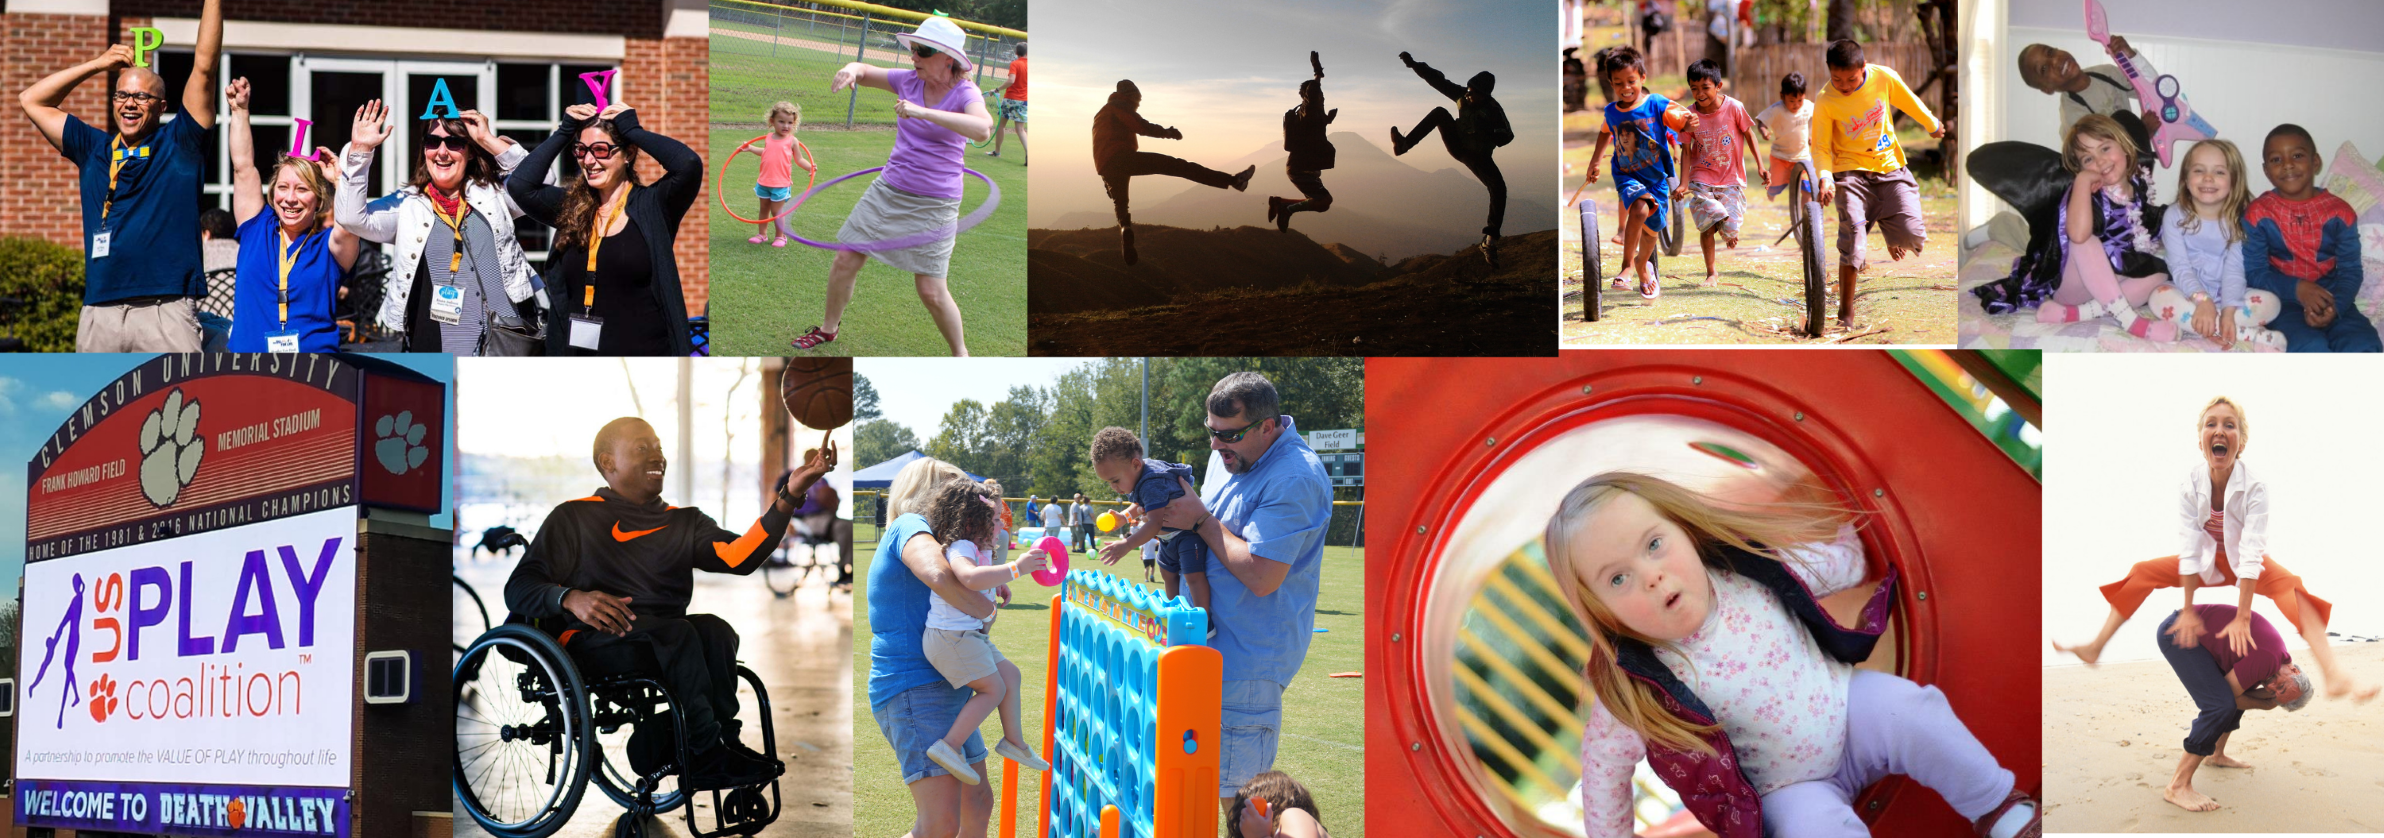 US Play Co - Collage of Event Photos with Adults and Children